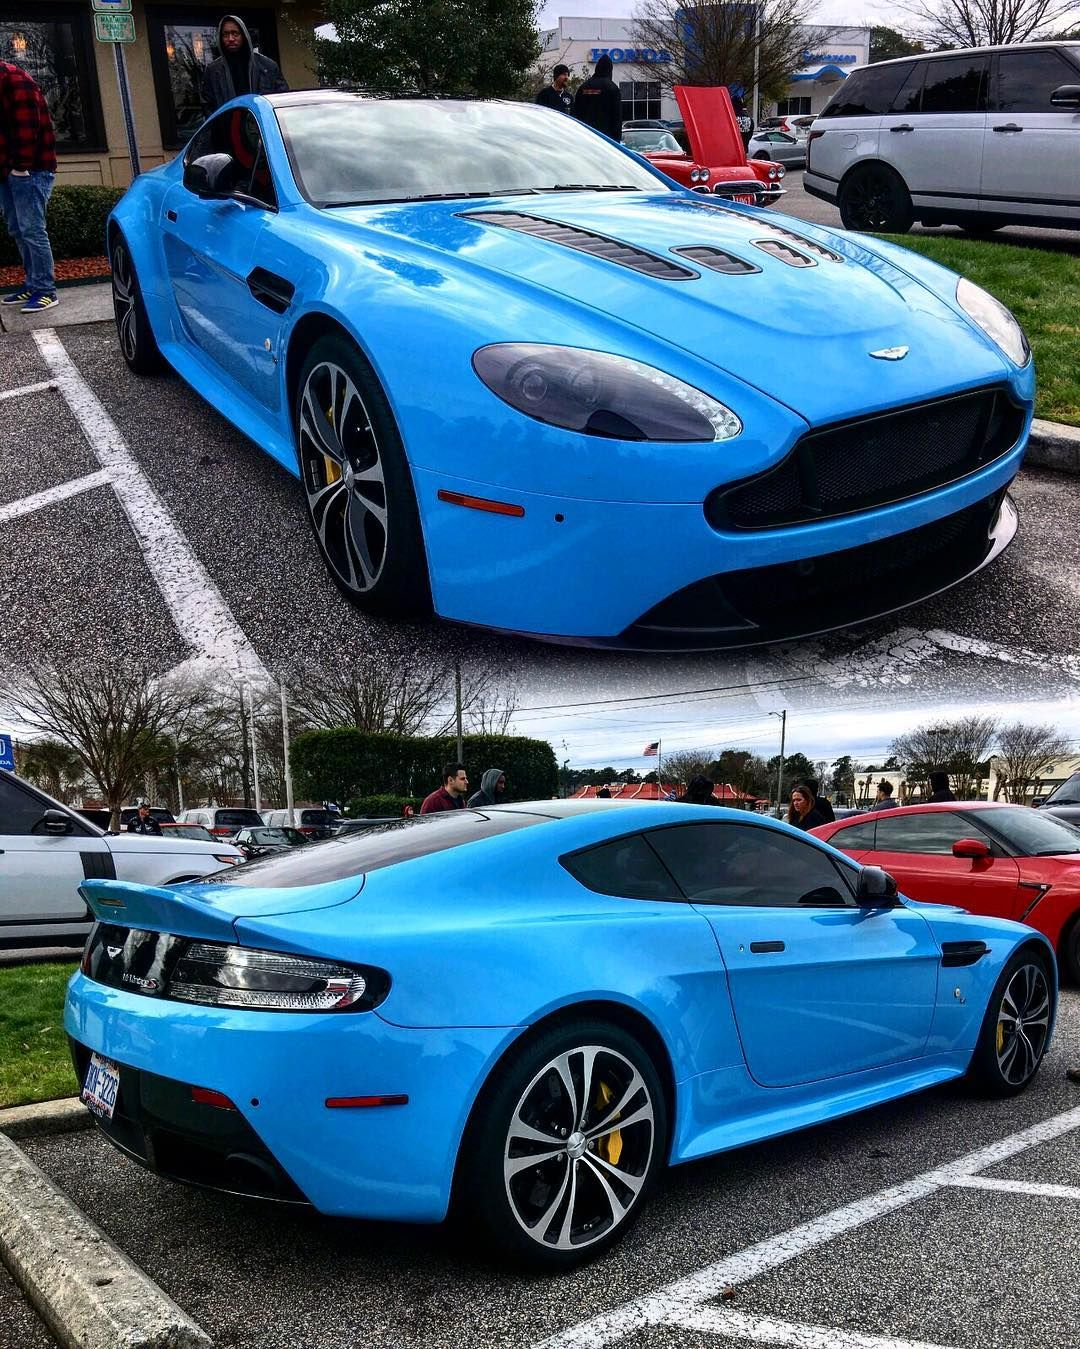 Enjoy This Gorgeous Aston Martin V12 Vantage S {Took These